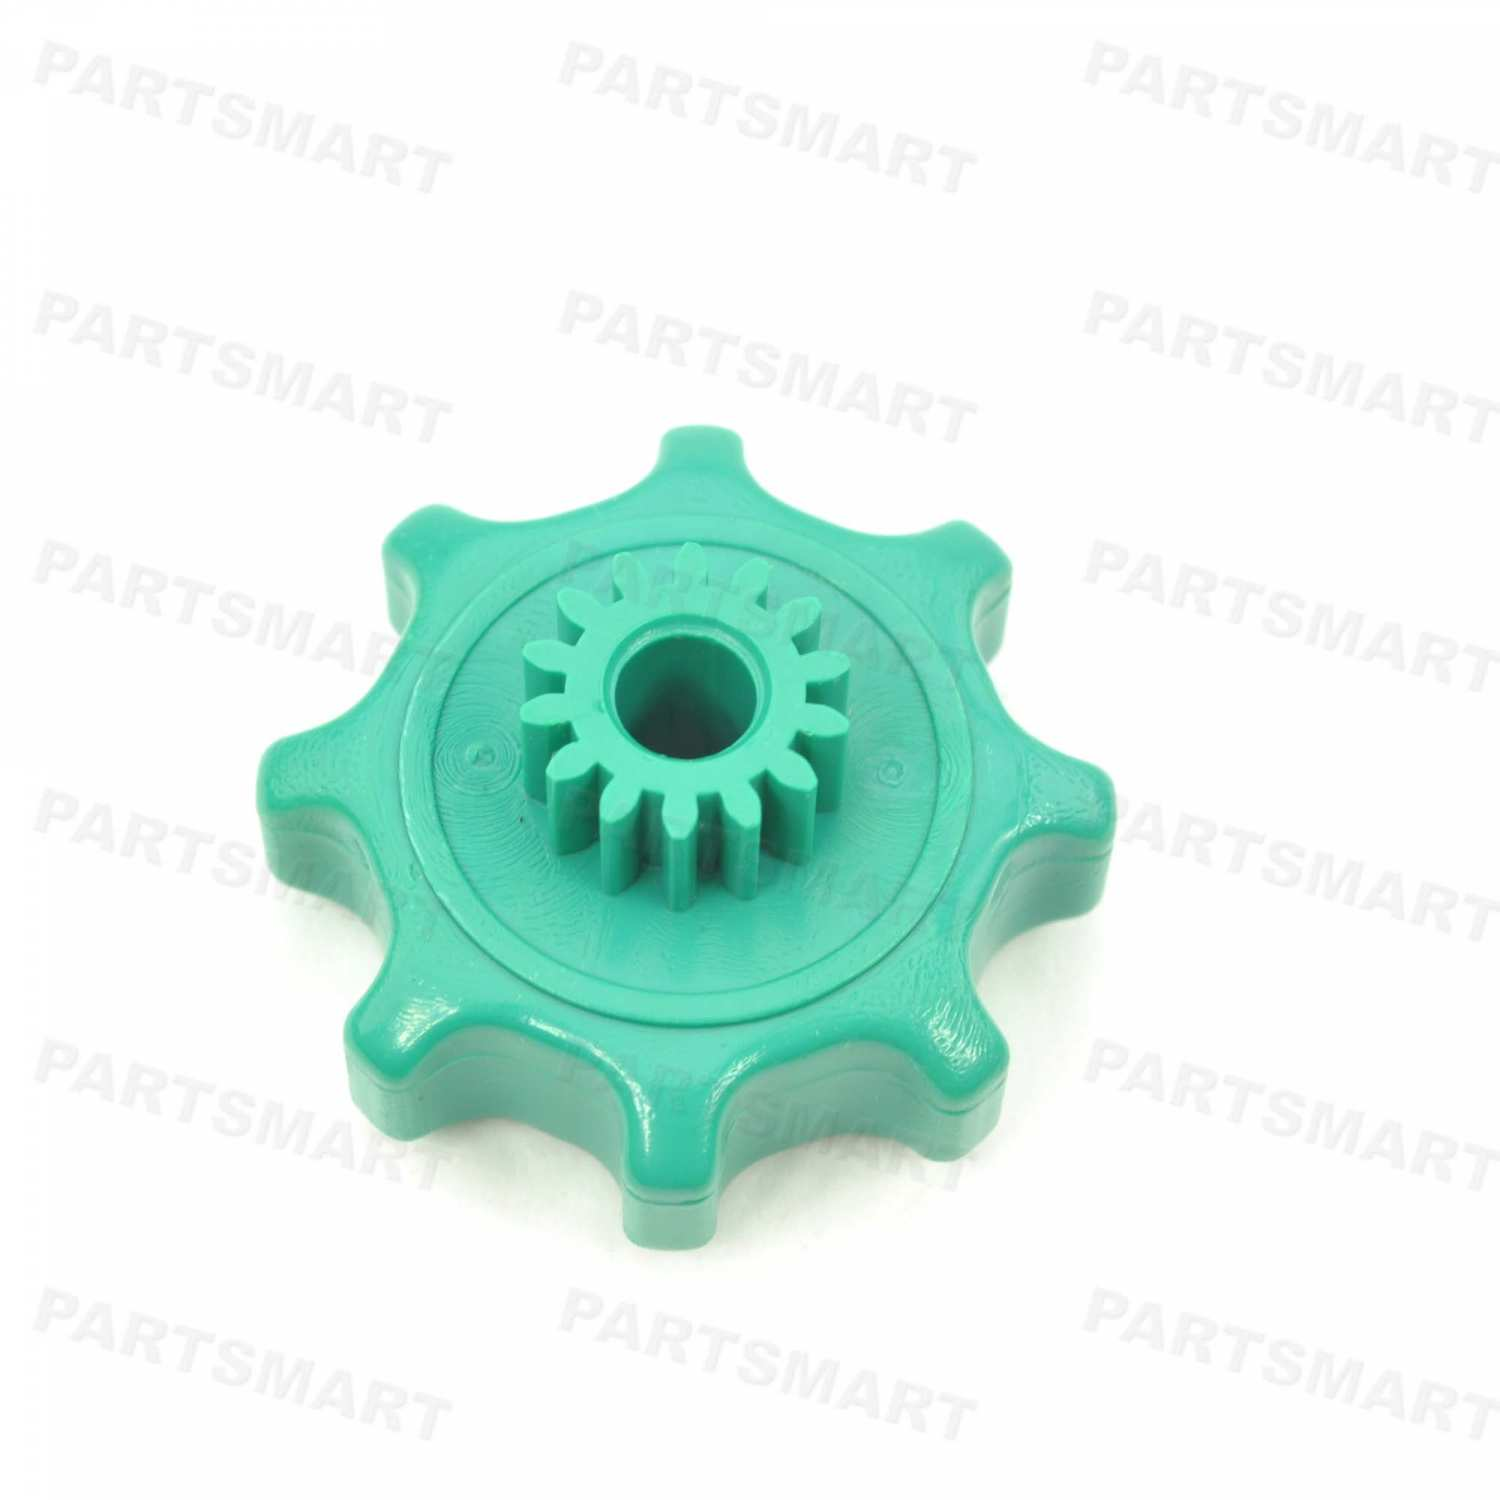 GR-4250-14G Fuser Knob Gear(14T), Green for HP LaserJet 4250, LaserJet 4300